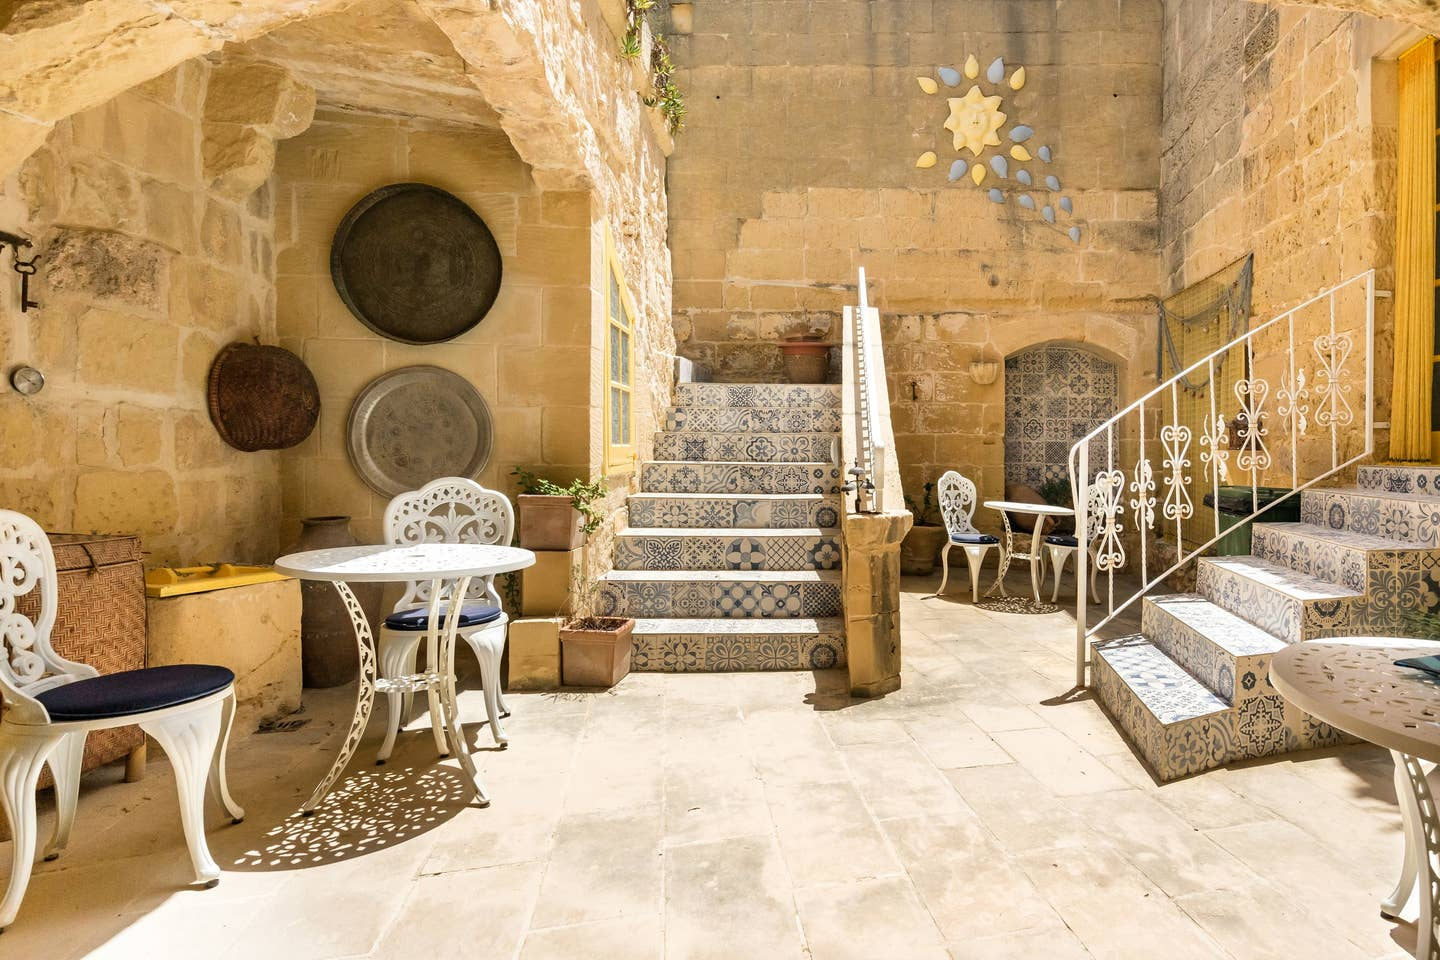 white metallic chairs and table at the house yard near staircase